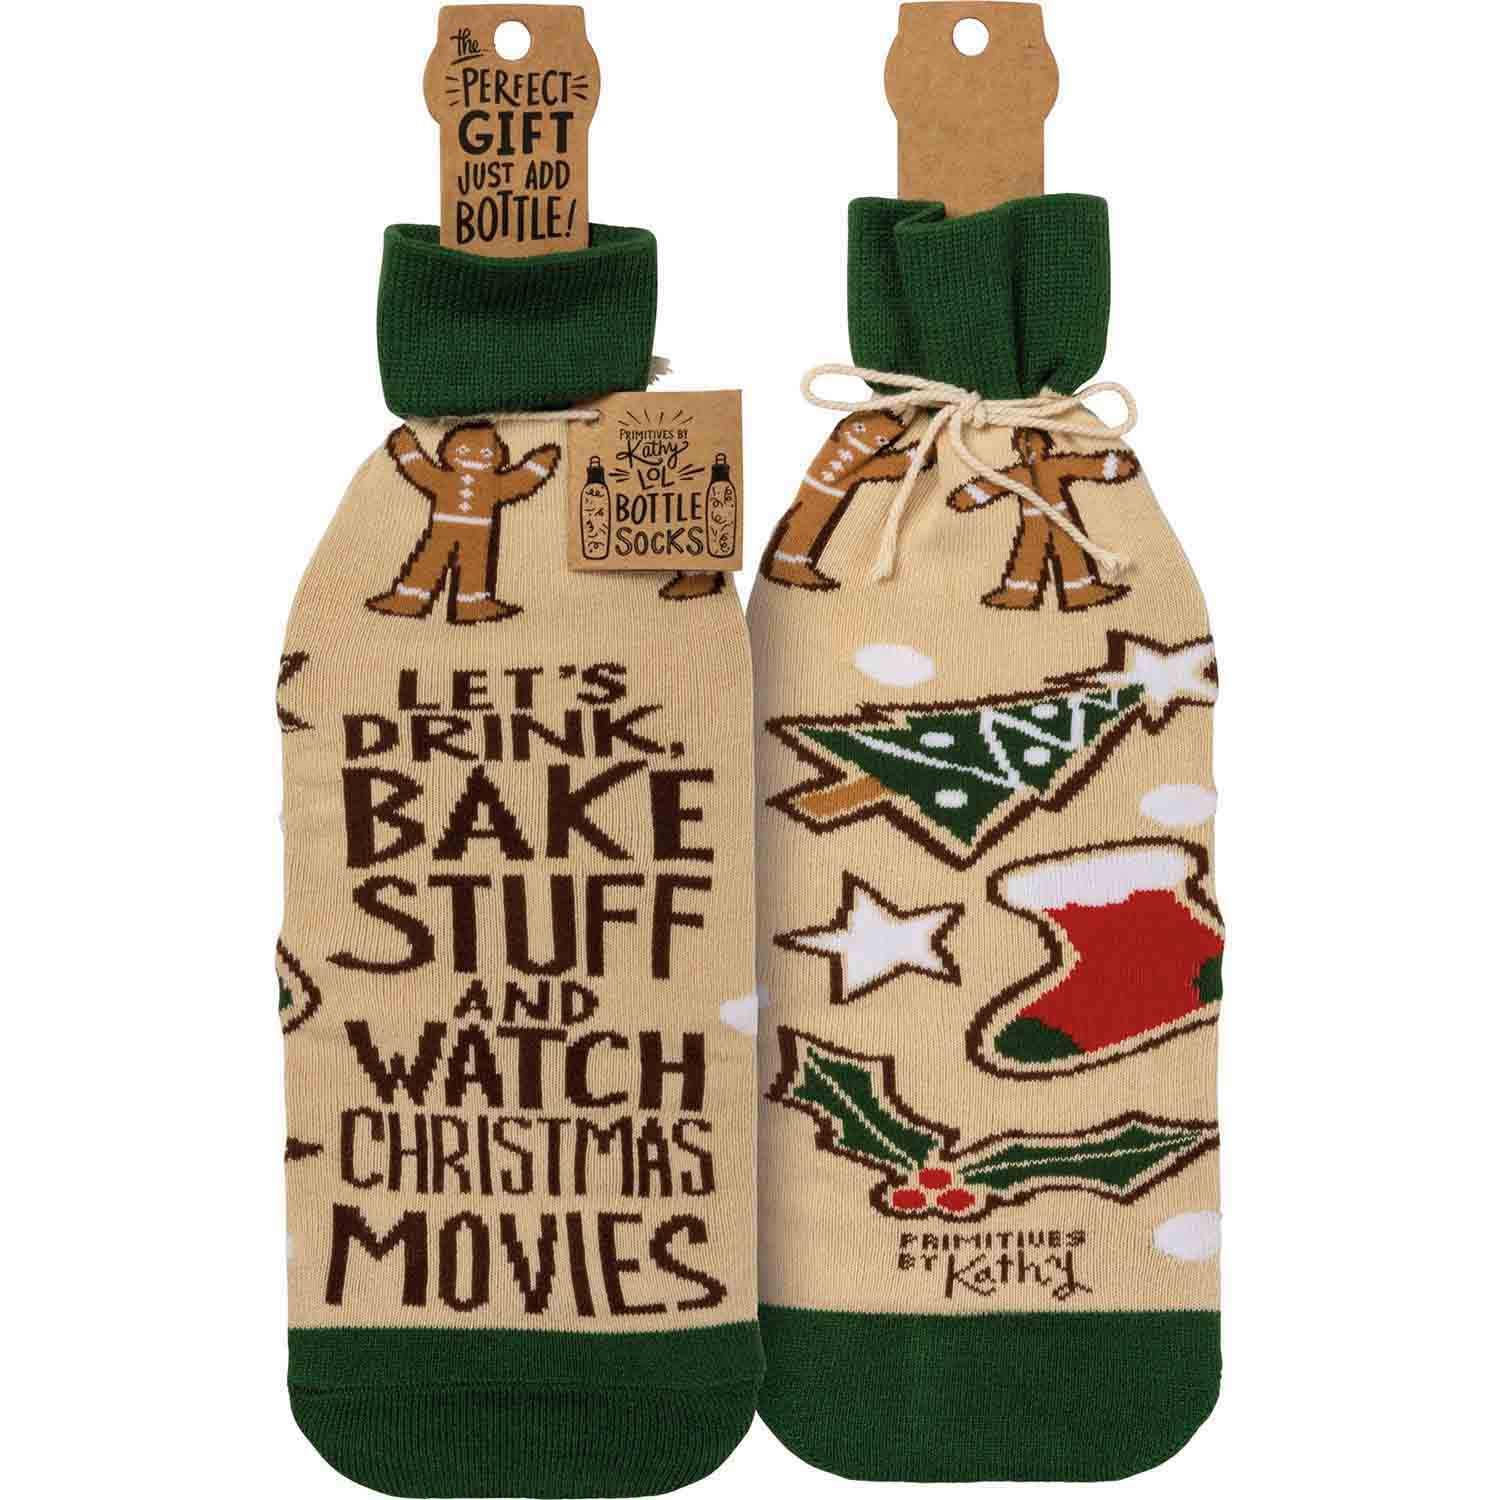 Bake Stuff And Watch Movies Bottle Sock